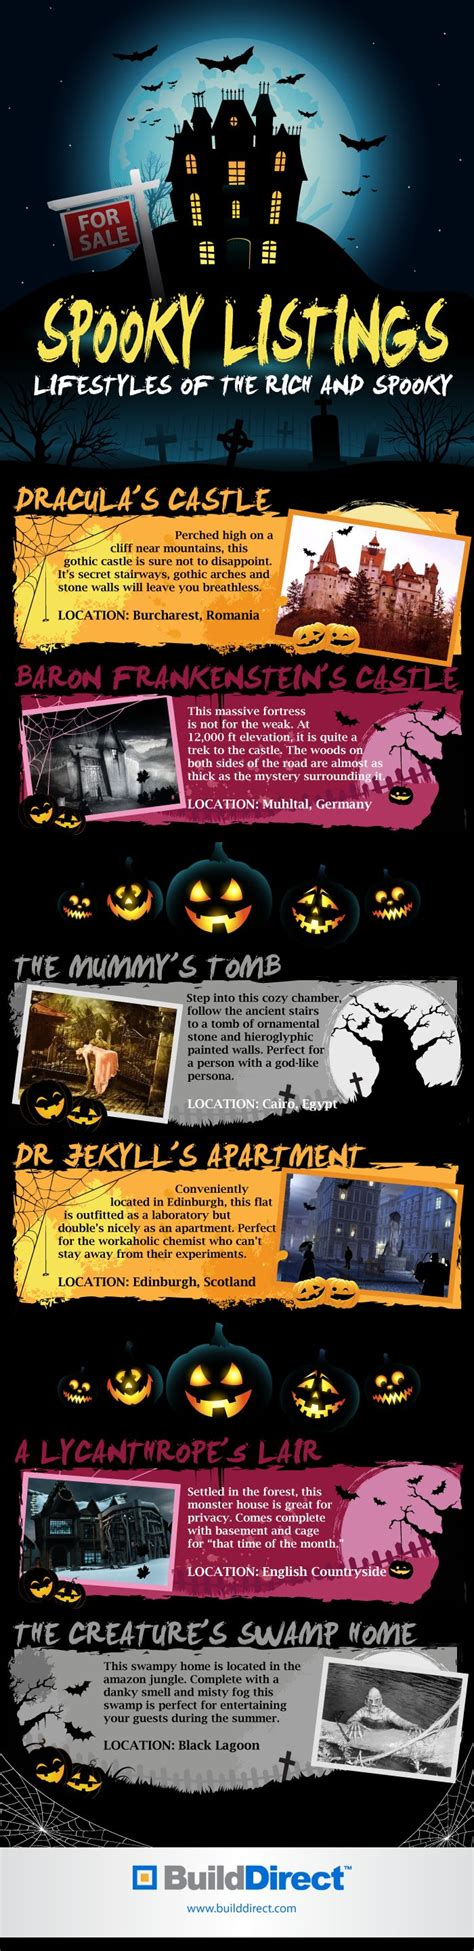 haunted house real estate listings 18 best images about real estate advertising on pinterest creative brochure design